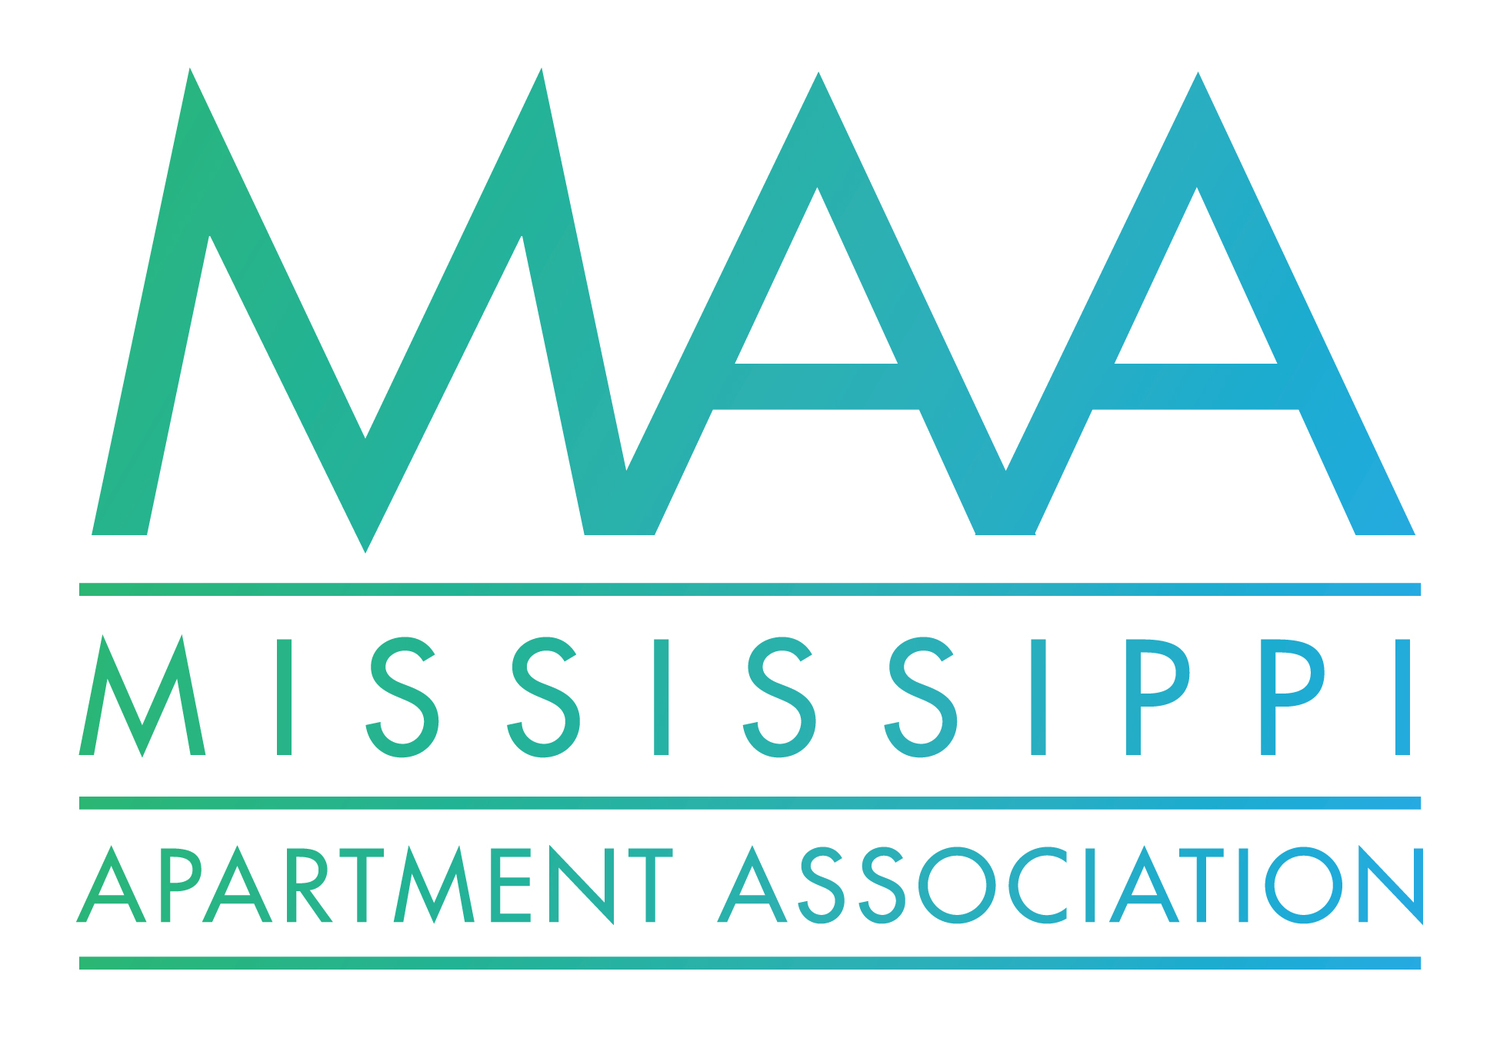 MS Apartment Association